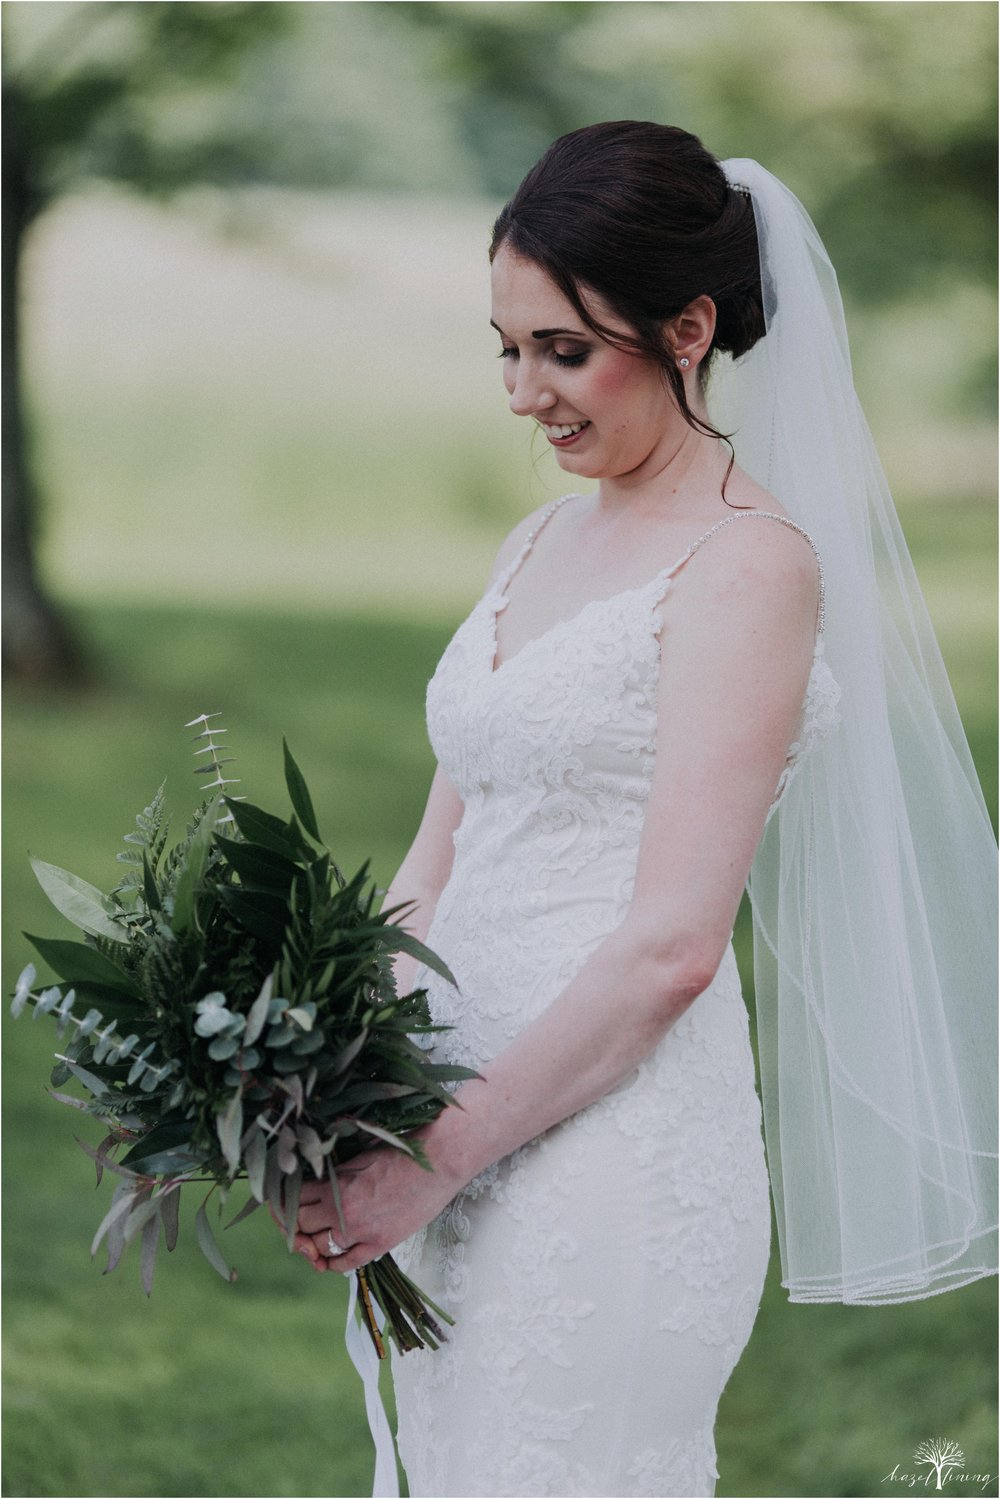 hazel-lining-travel-wedding-elopement-photography-lisa-landon-shoemaker-the-farm-bakery-and-events-bucks-county-quakertown-pennsylvania-summer-country-outdoor-farm-wedding_0019.jpg